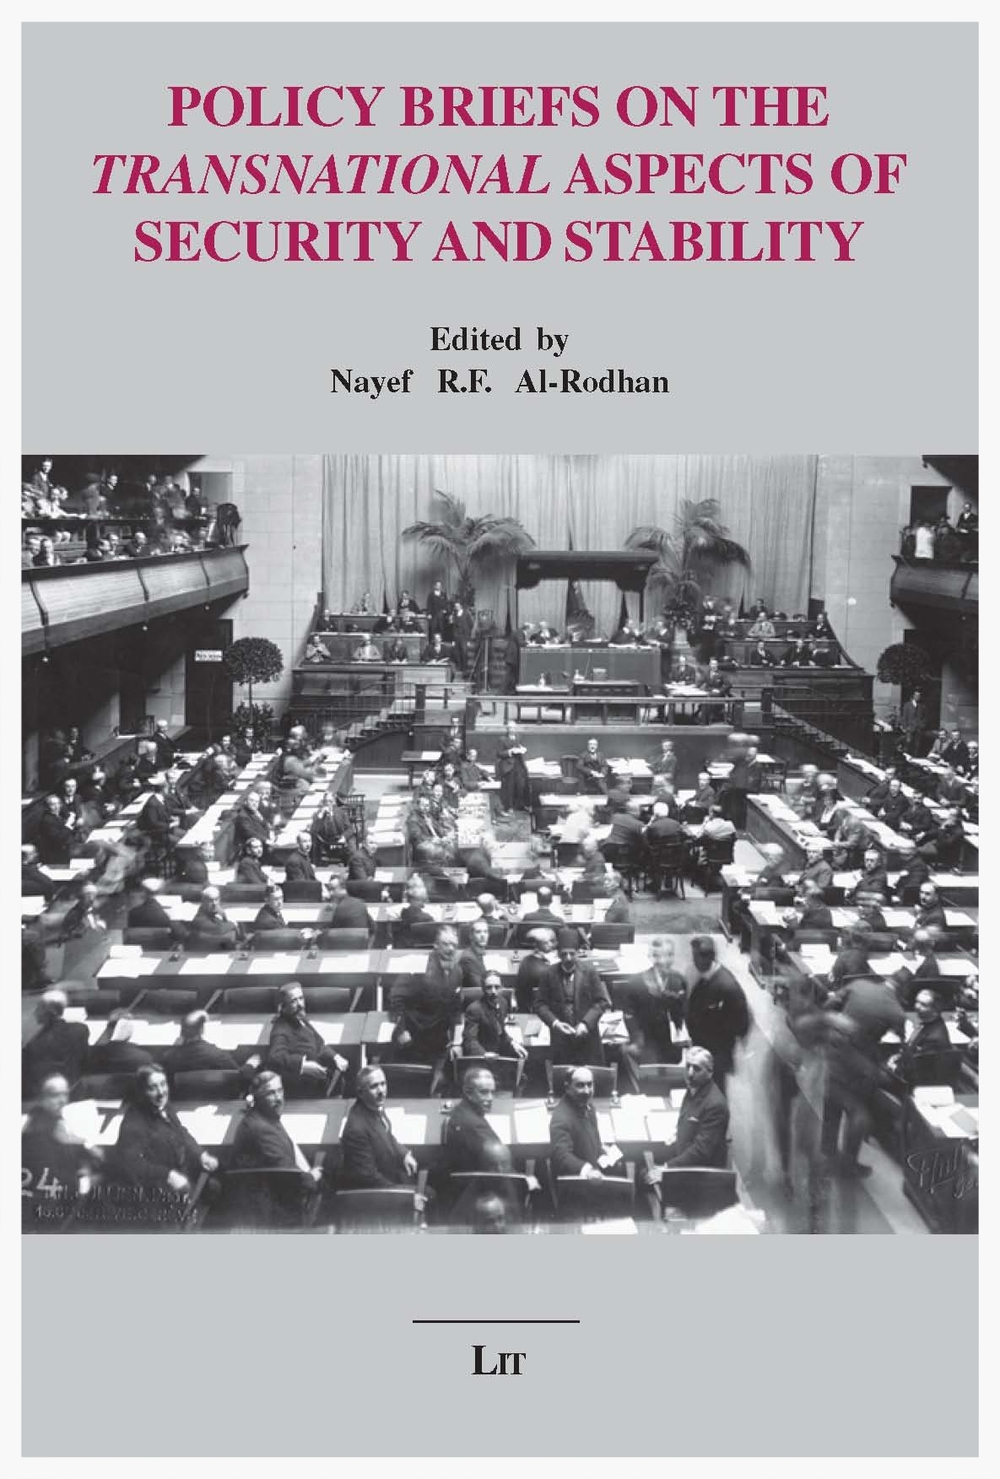 Copy of POLICY BRIEFS ON THE TRANSNATIONAL ASPECTS OF SECURITY AND STABILITY